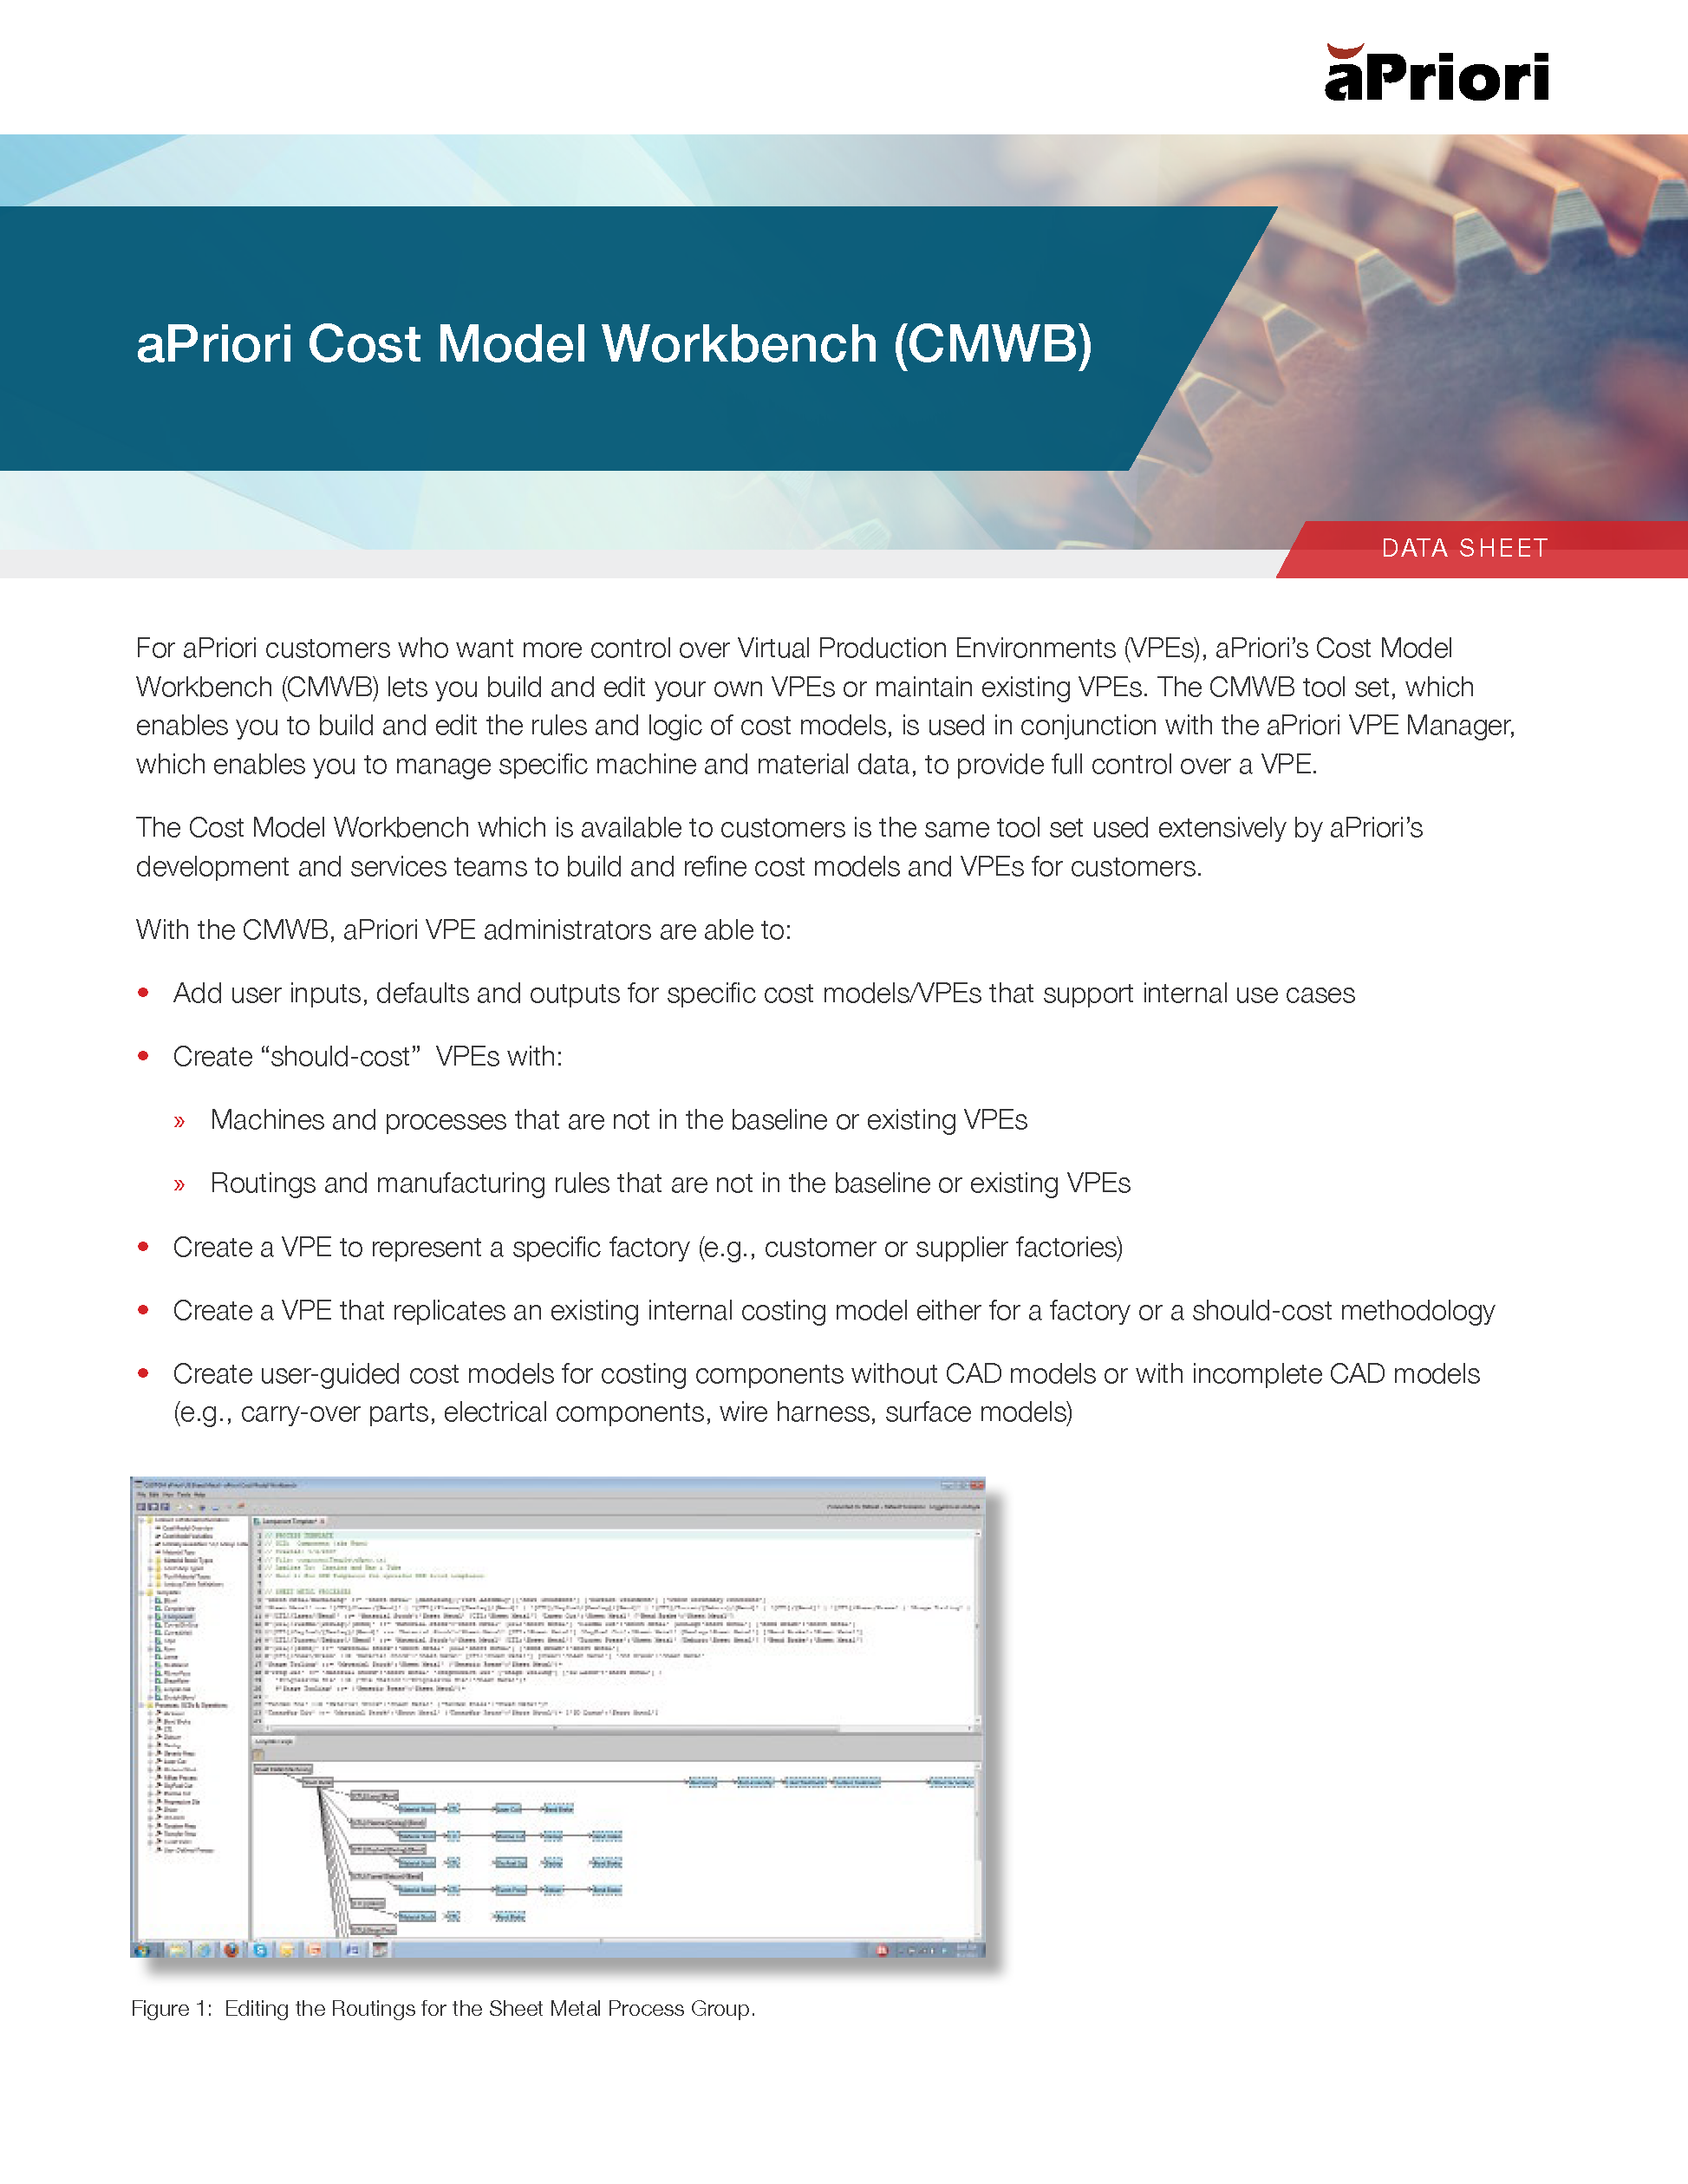 Cost Model Workbench